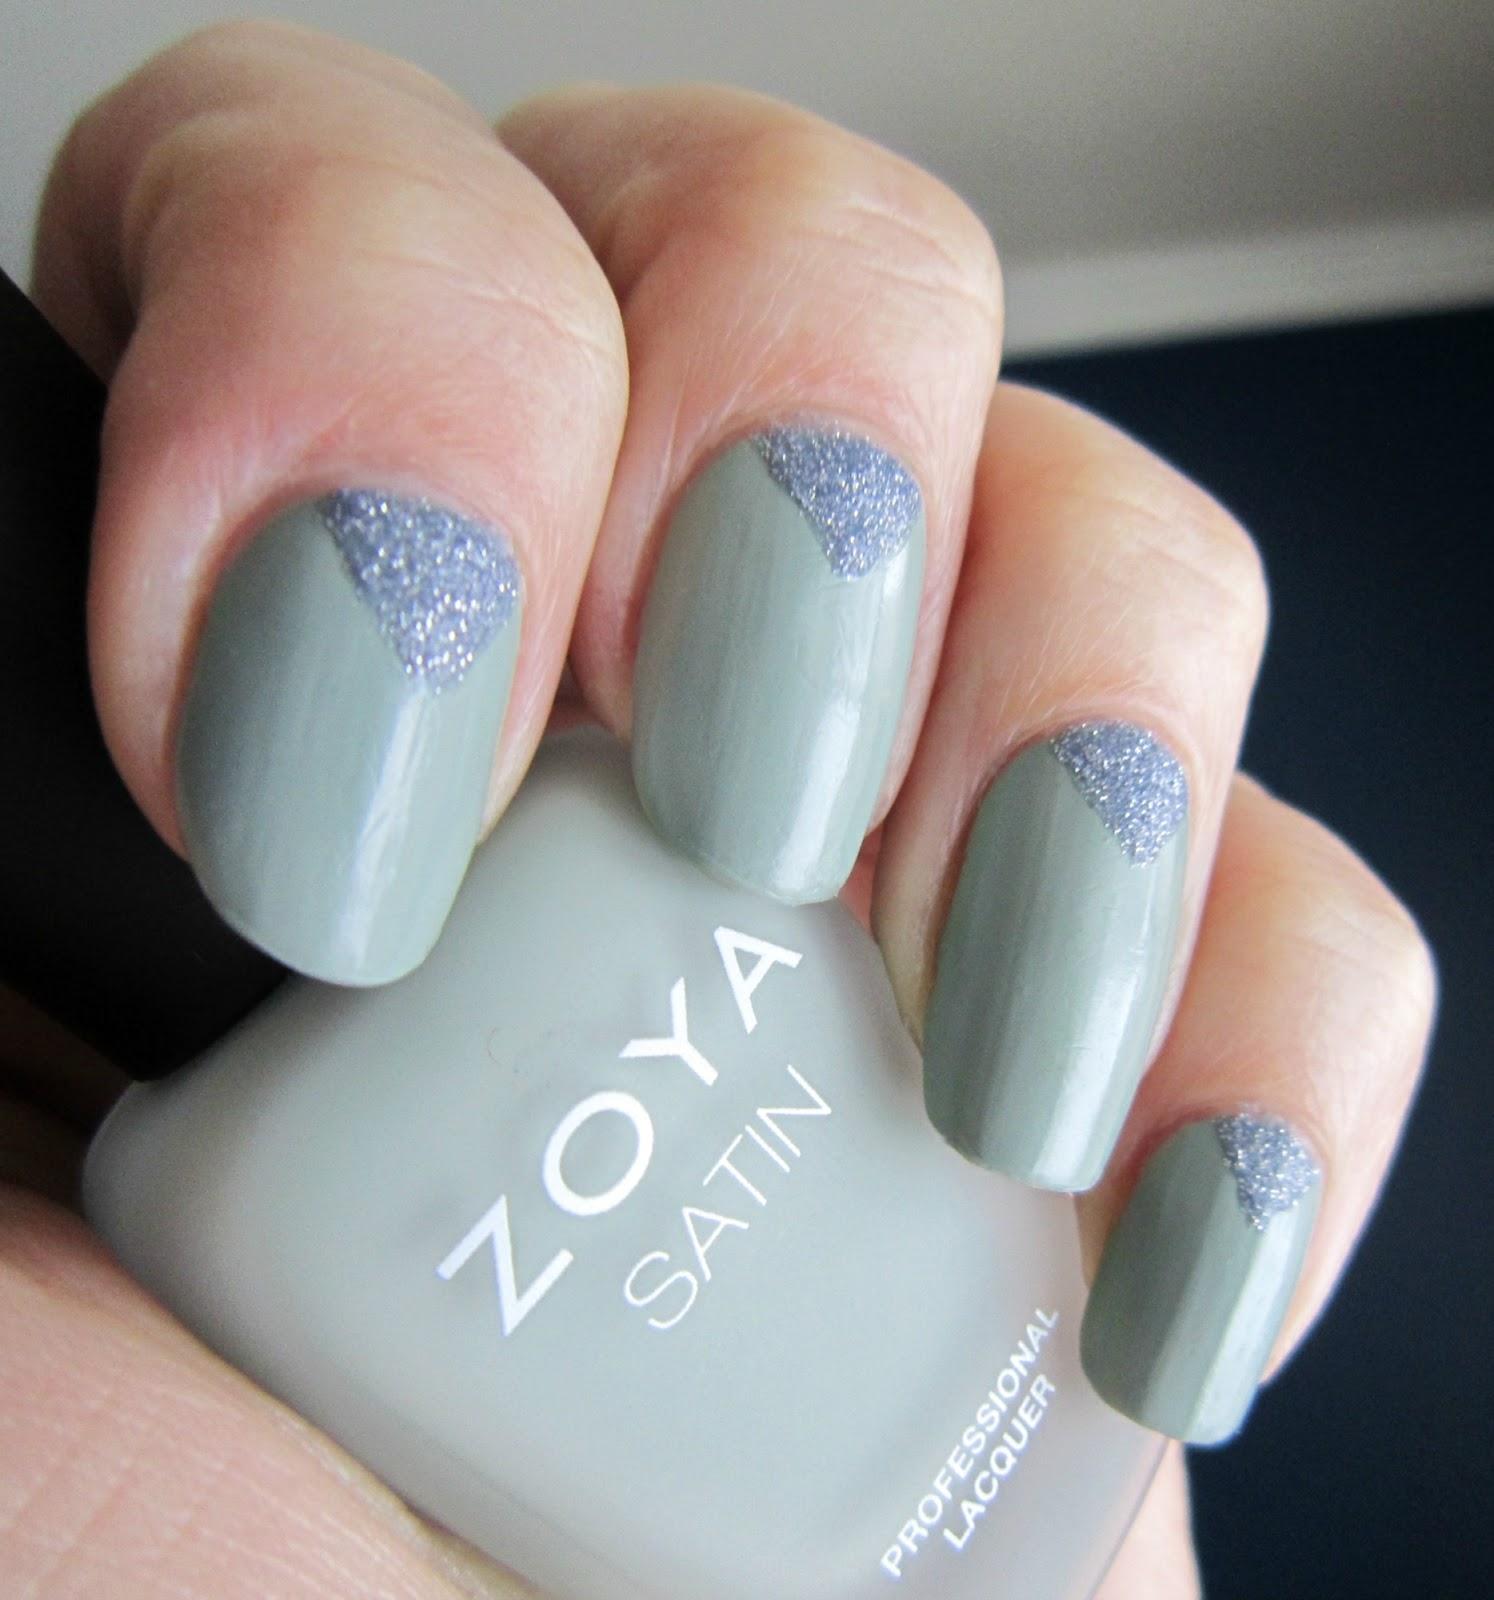 Concrete and Nail Polish: Pixie Dust